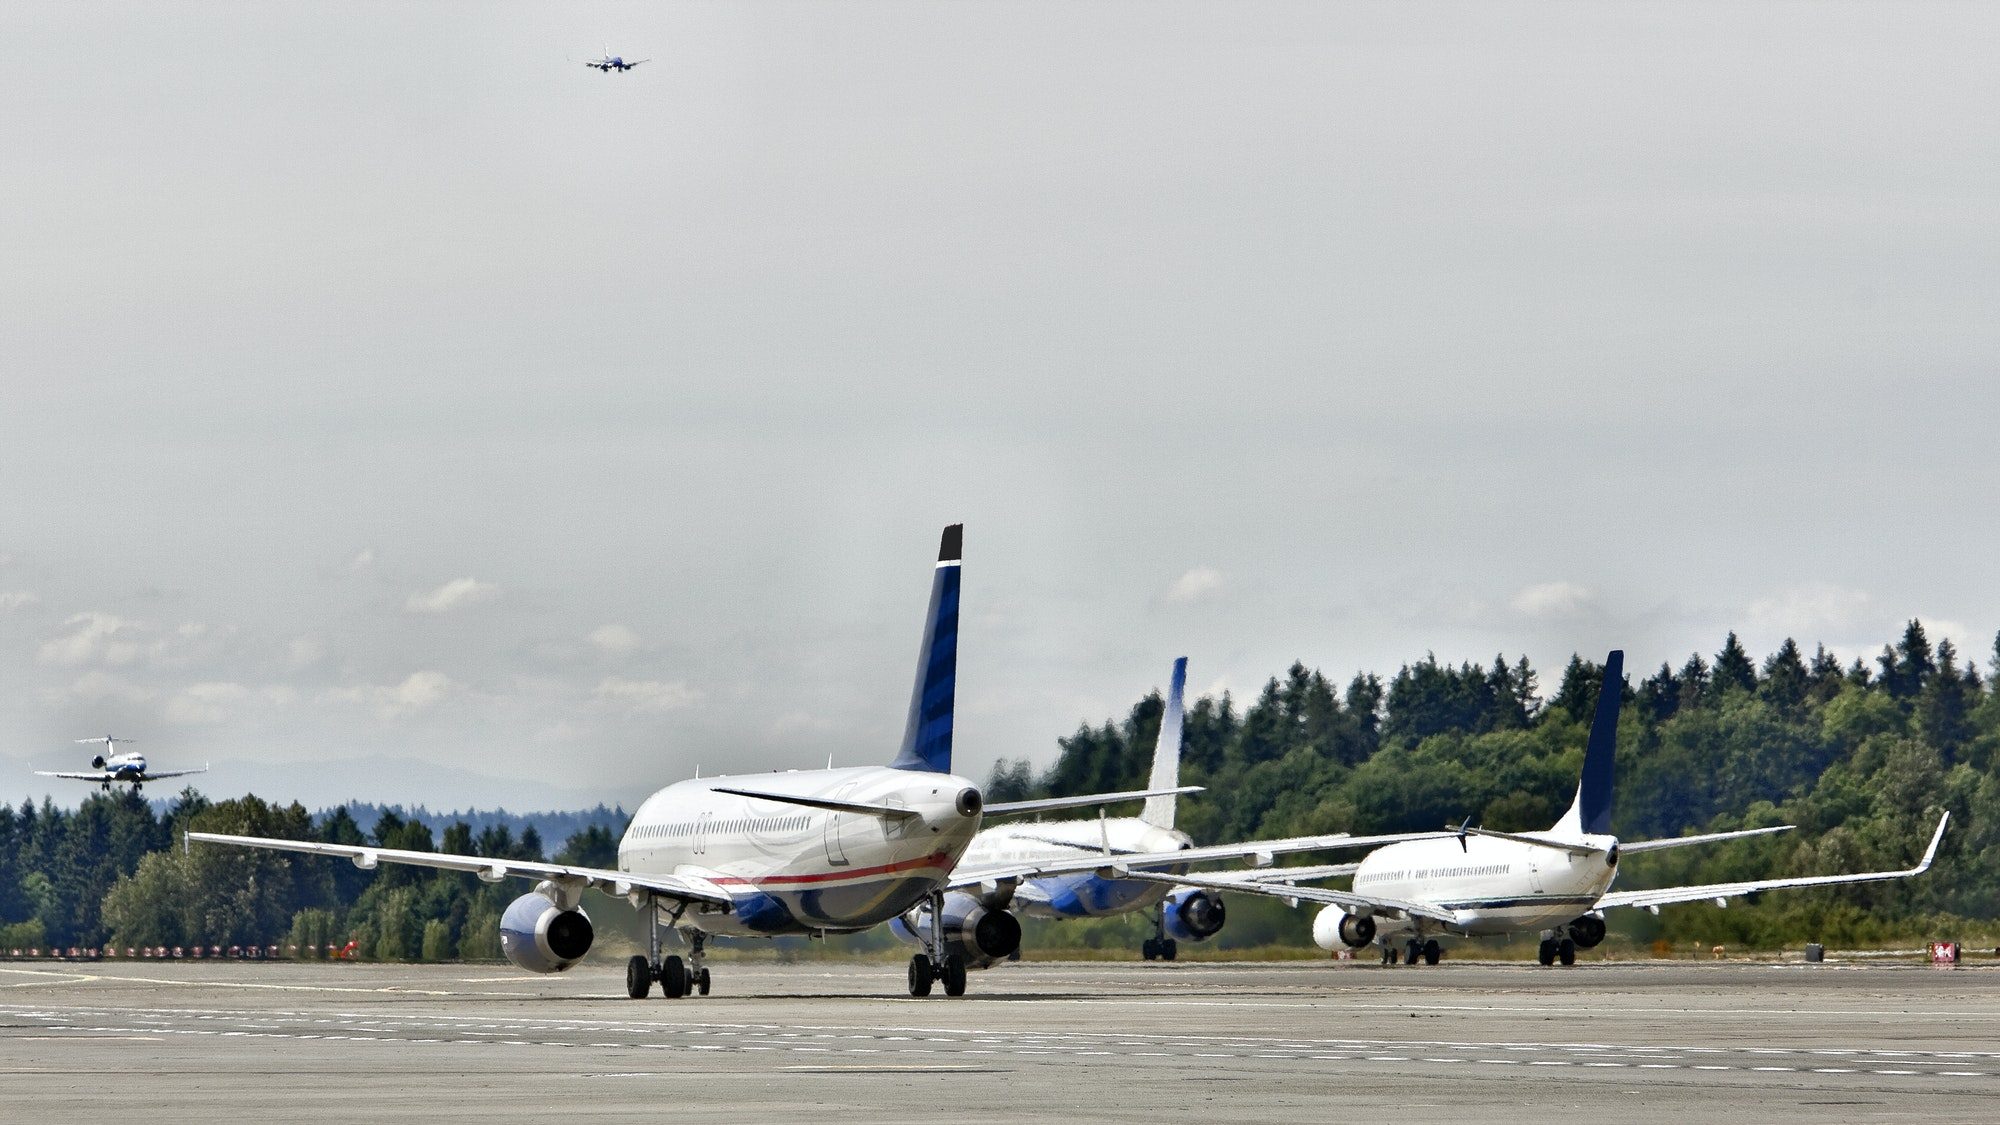 Three airplanes on a runway at an airfield